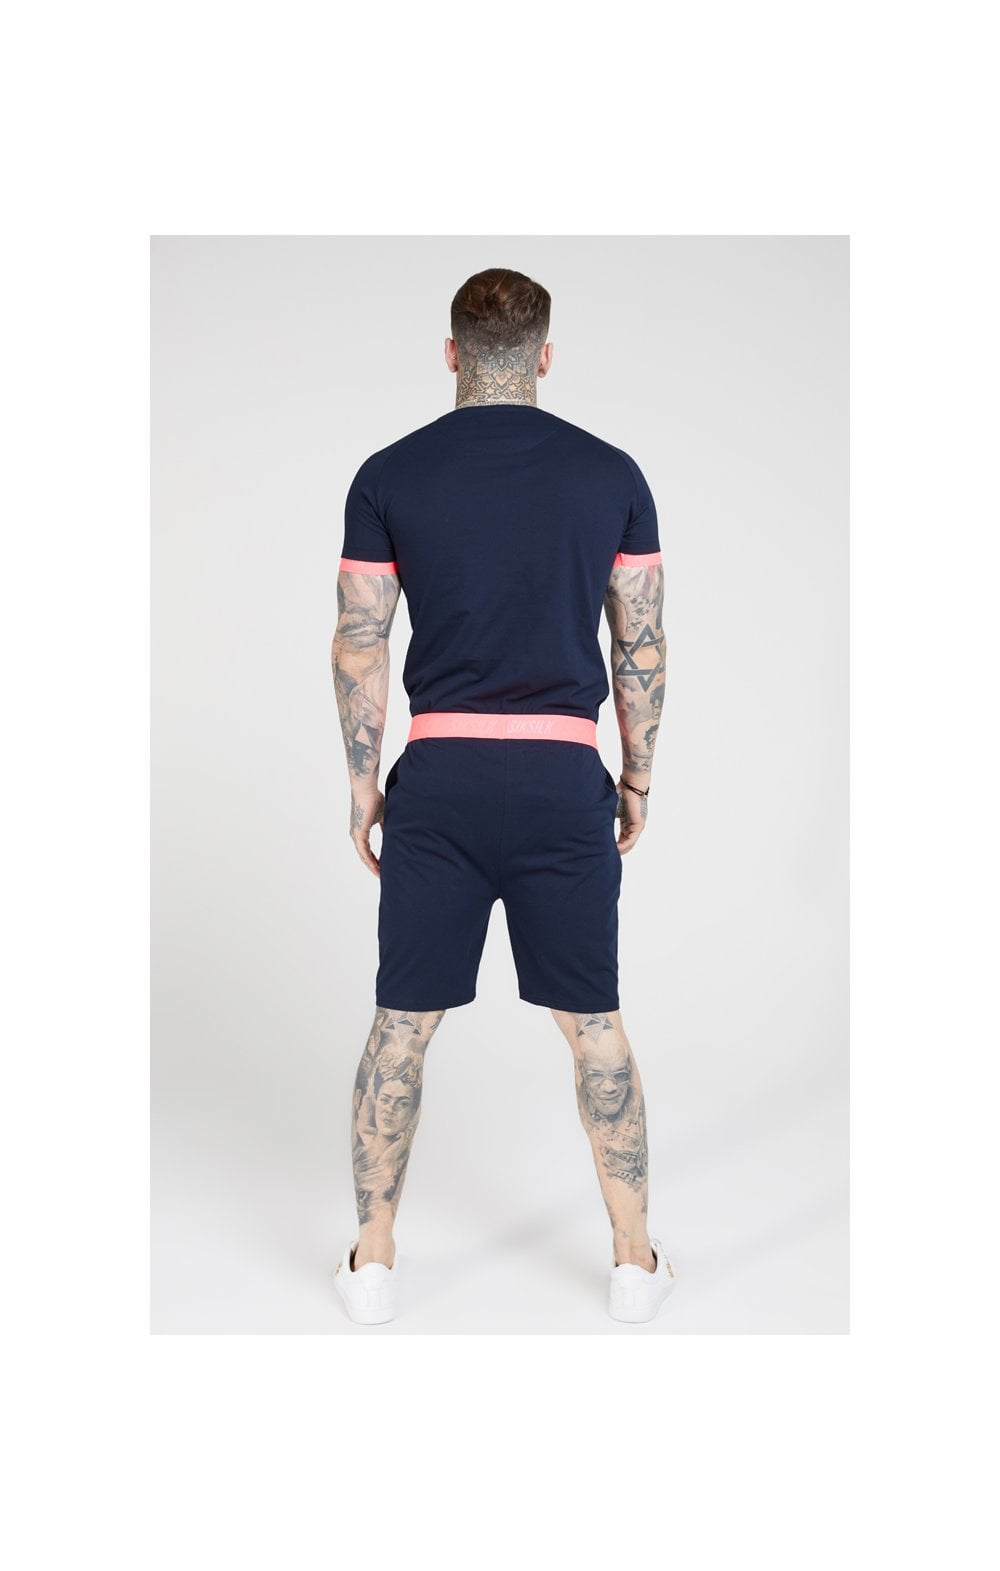 Load image into Gallery viewer, SikSilk S/S Neon Tech Tee – Navy & Neon Pink (5)